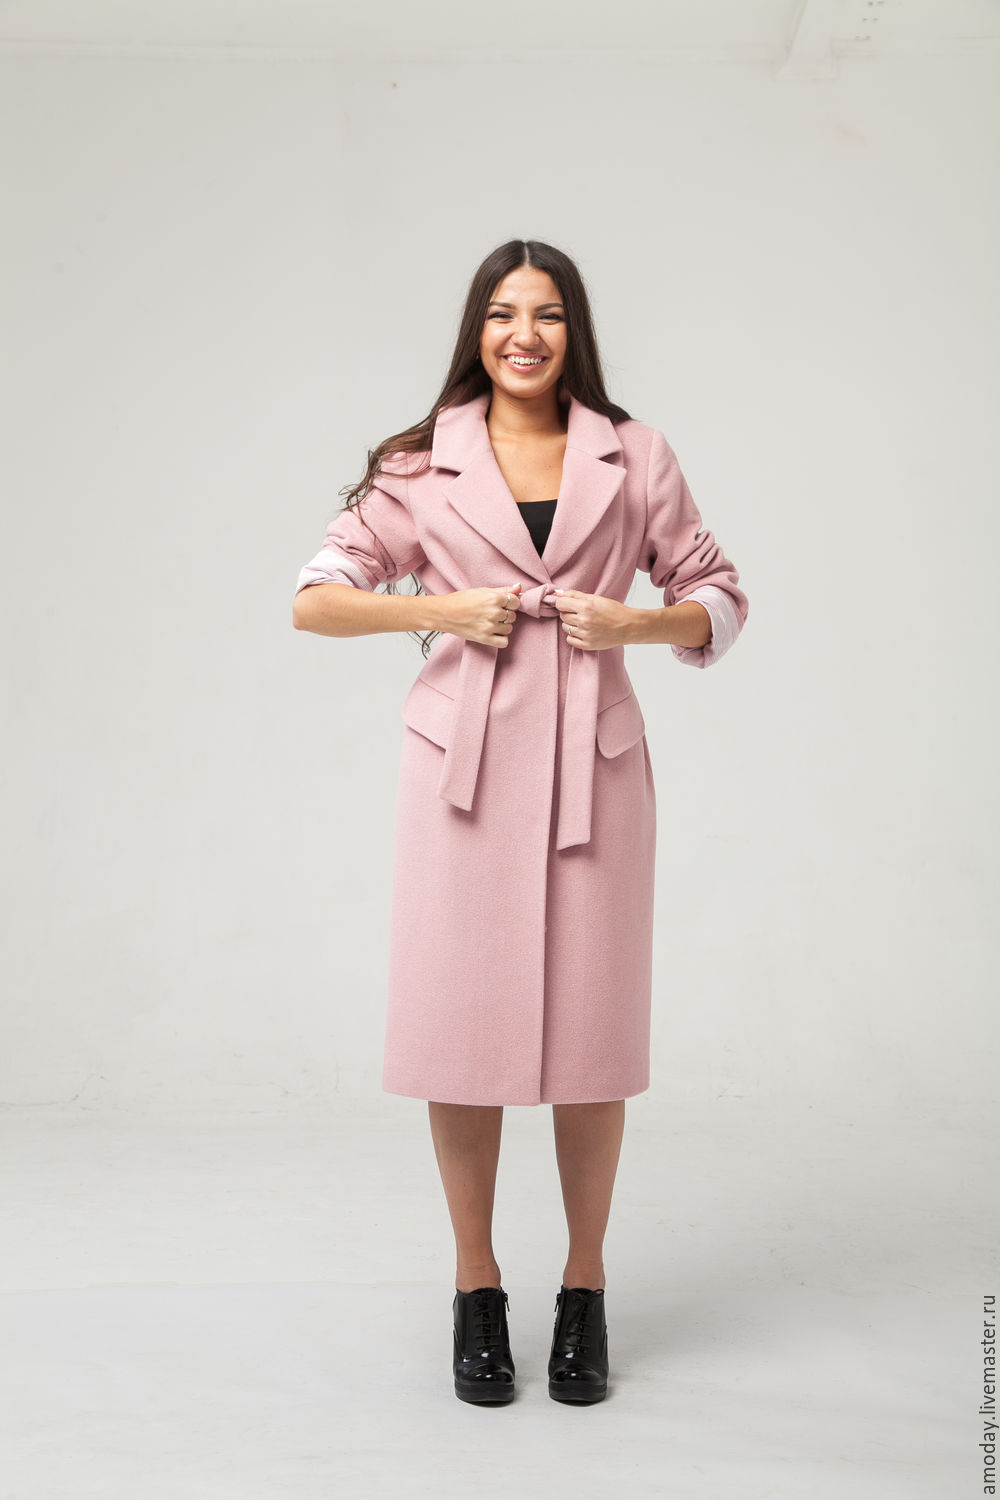 Coat handmade design in modern classic style jacket made of cashmere and wool colors dusty rose. The model can be ordered in any fabric.